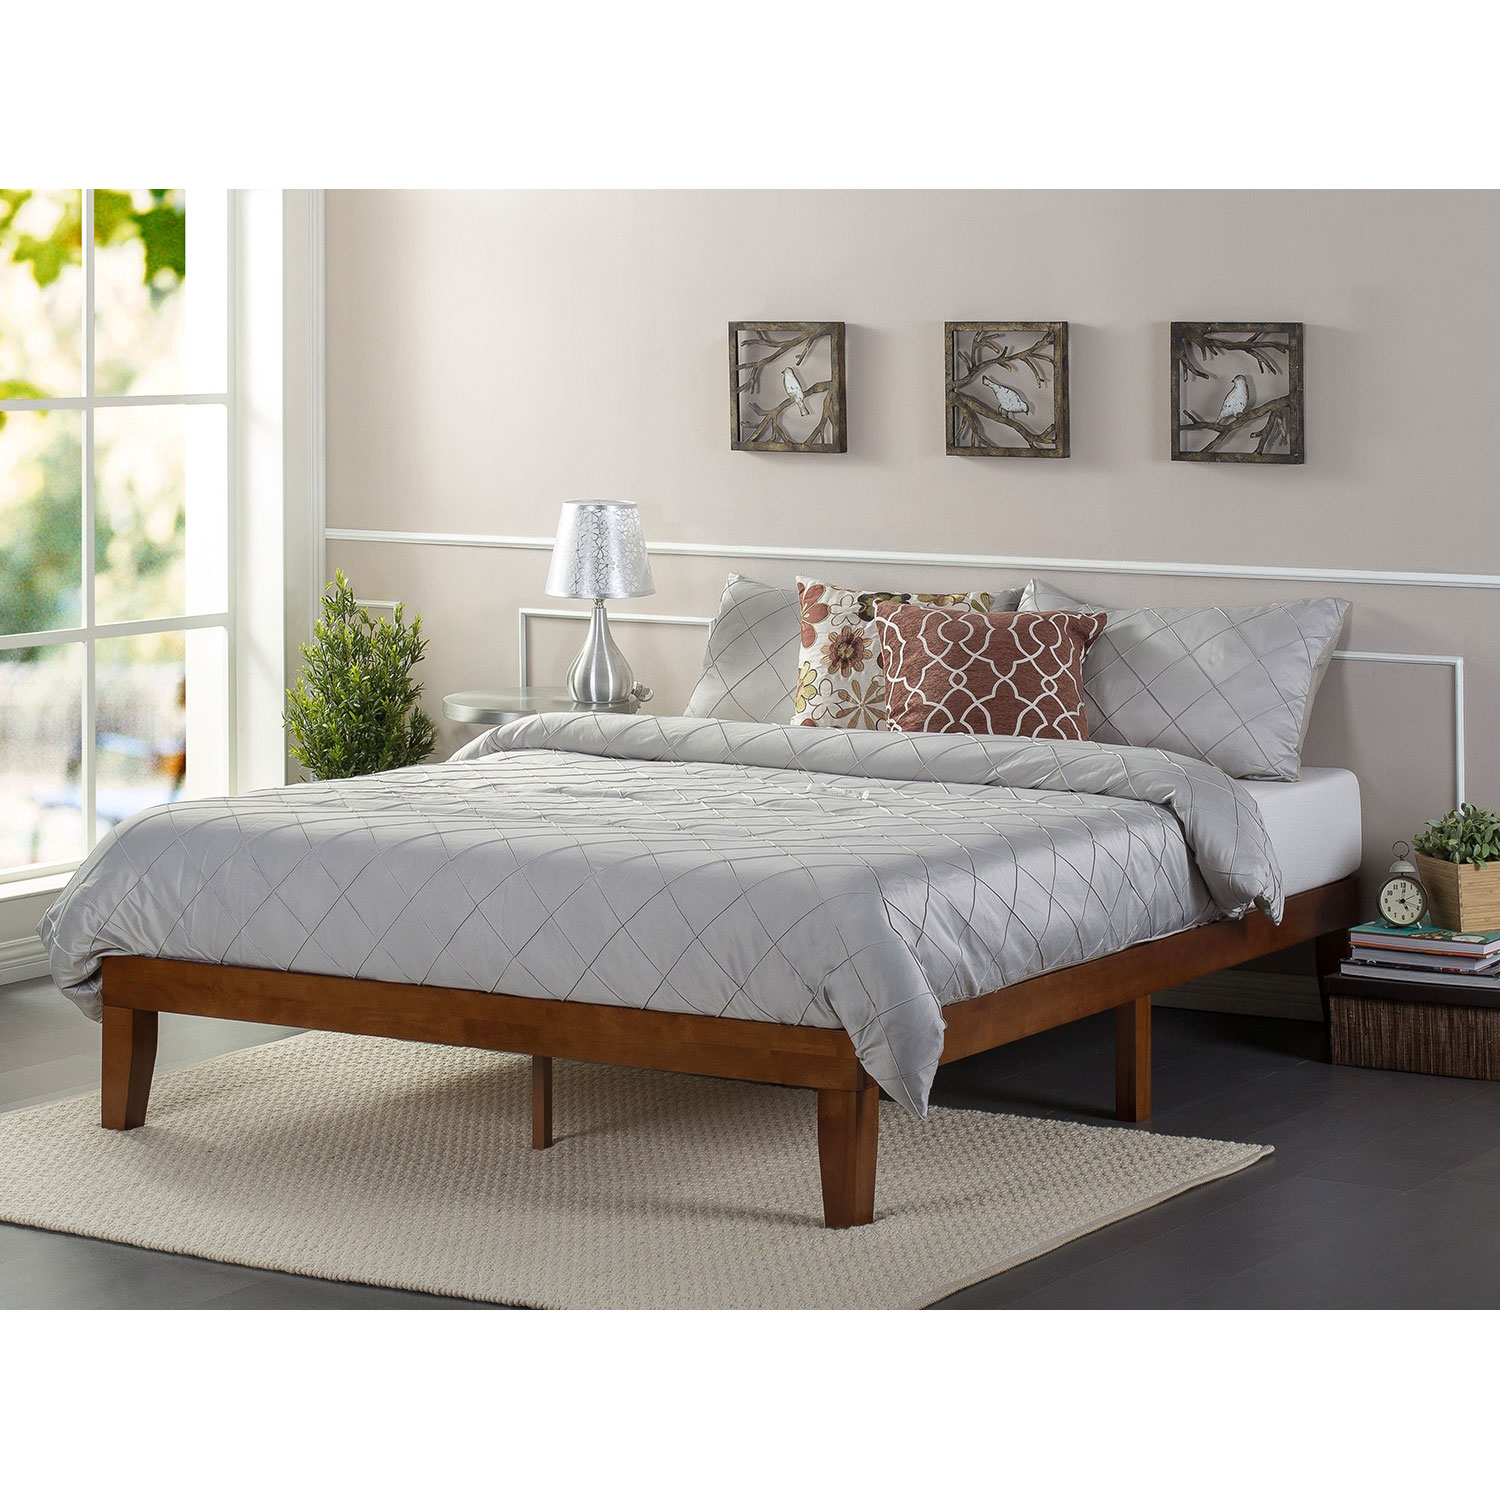 Picture of: Zinus Solid Wood Contemporary Platform Bed Queen Cherry Best Buy Canada